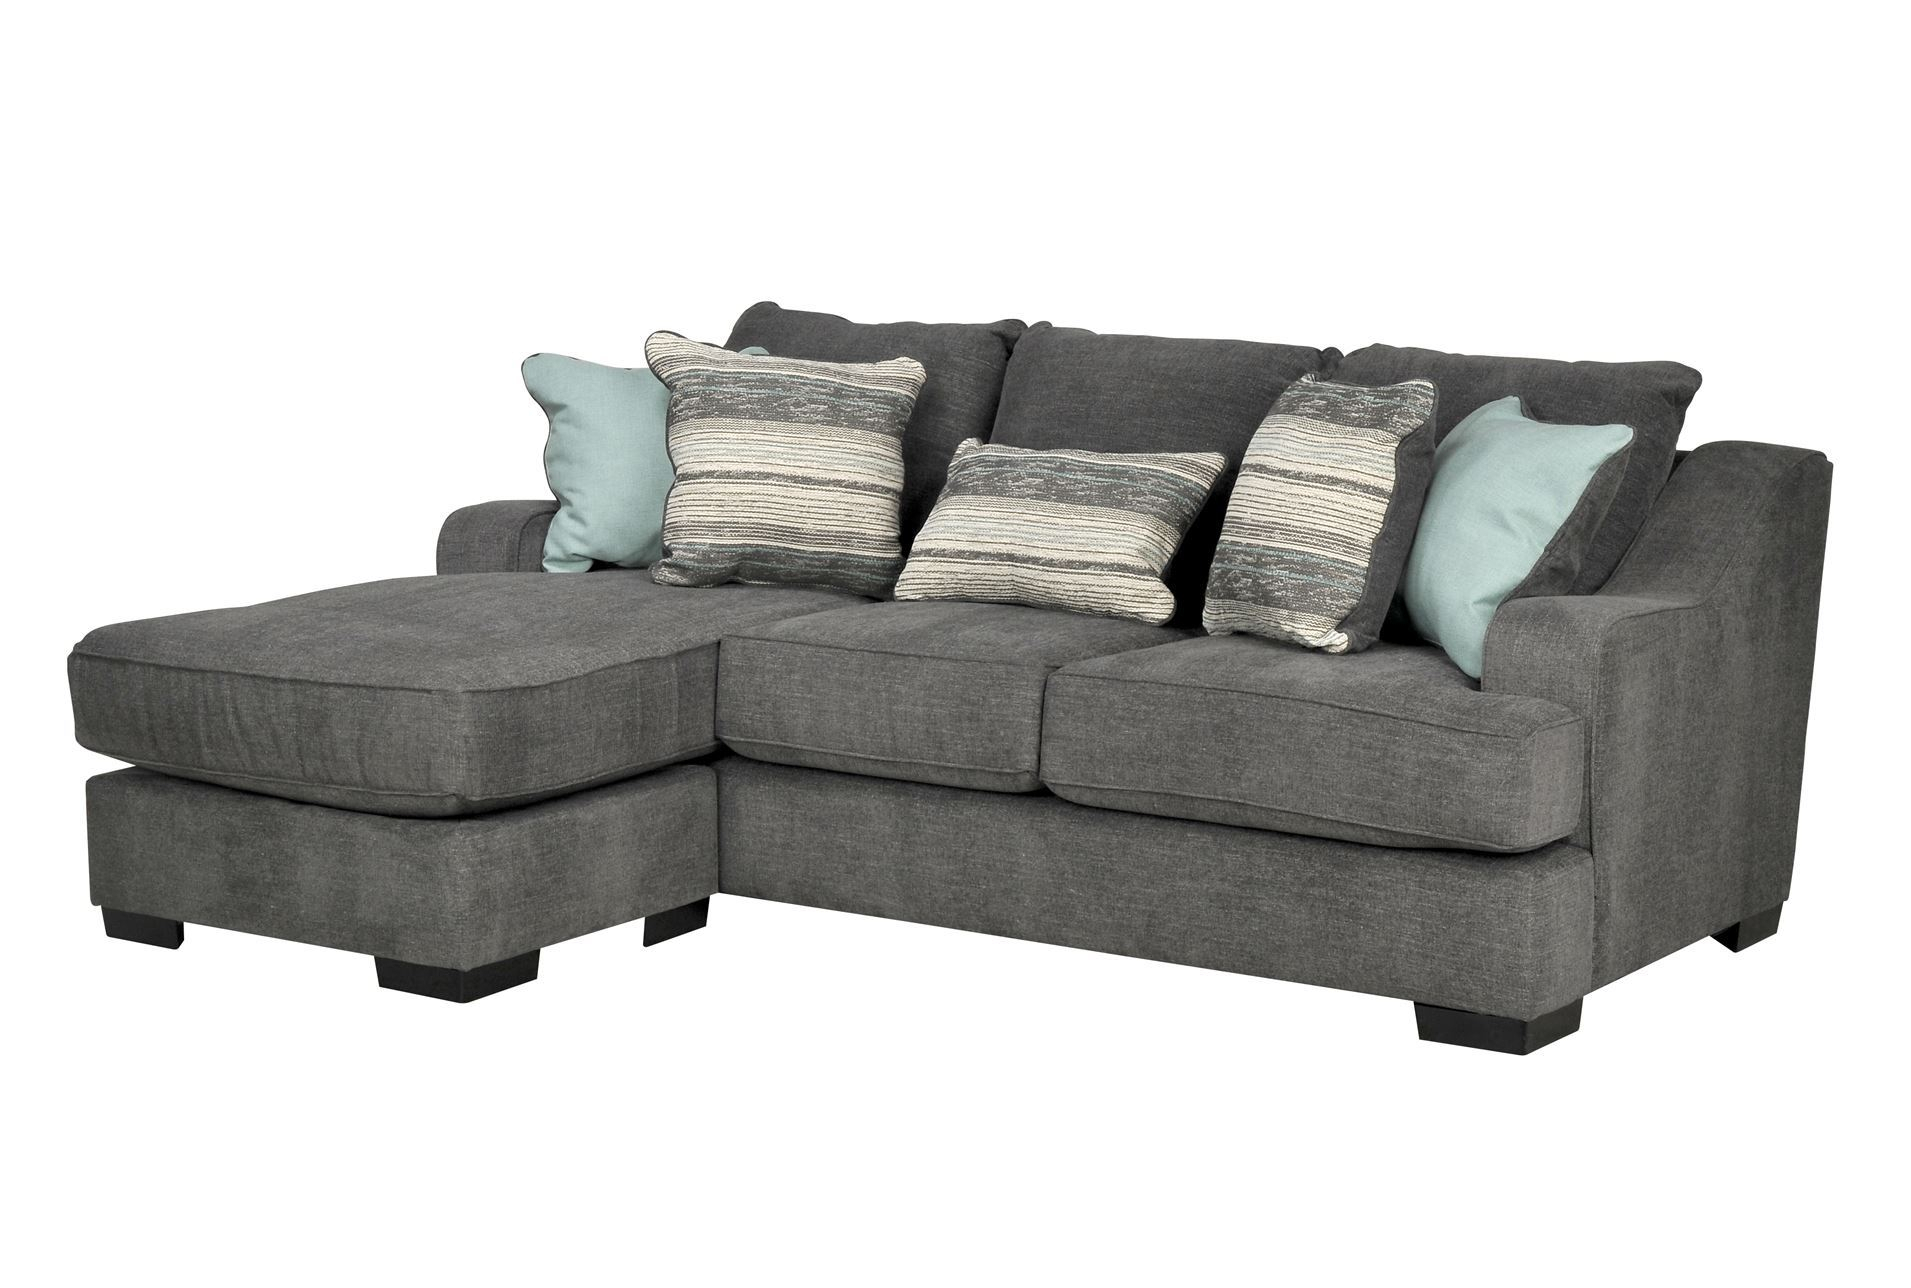 Colour Slipcovers Pillows Covers Couch Placement Glamour Schemes For Aquarius Dark Grey Sofa Chairs (View 16 of 25)